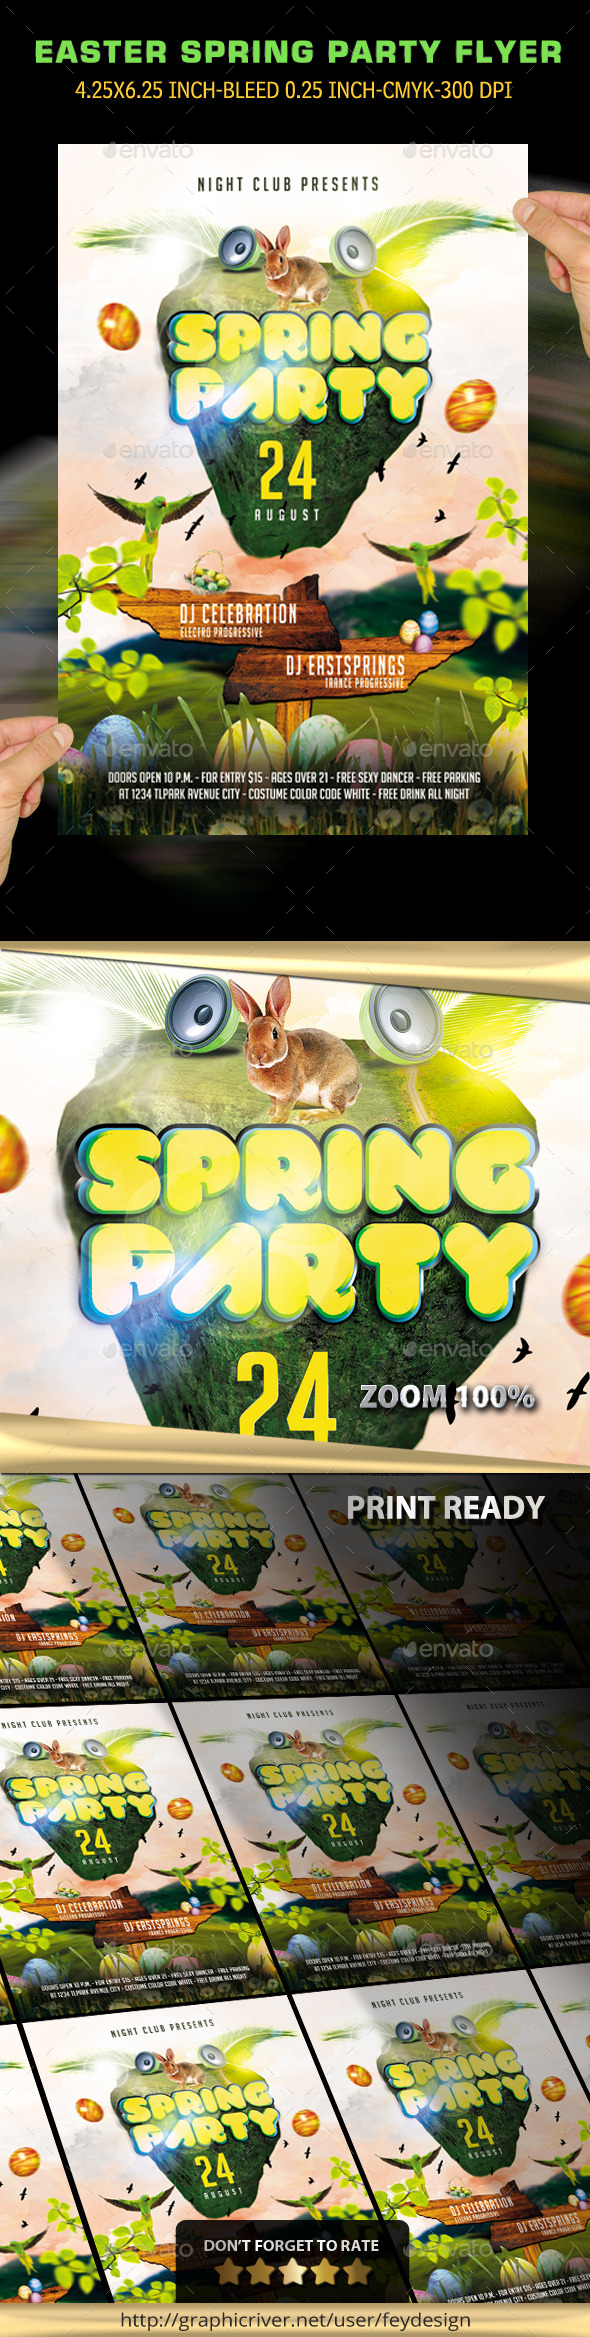 Easter Spring Party Flyer - Events Flyers